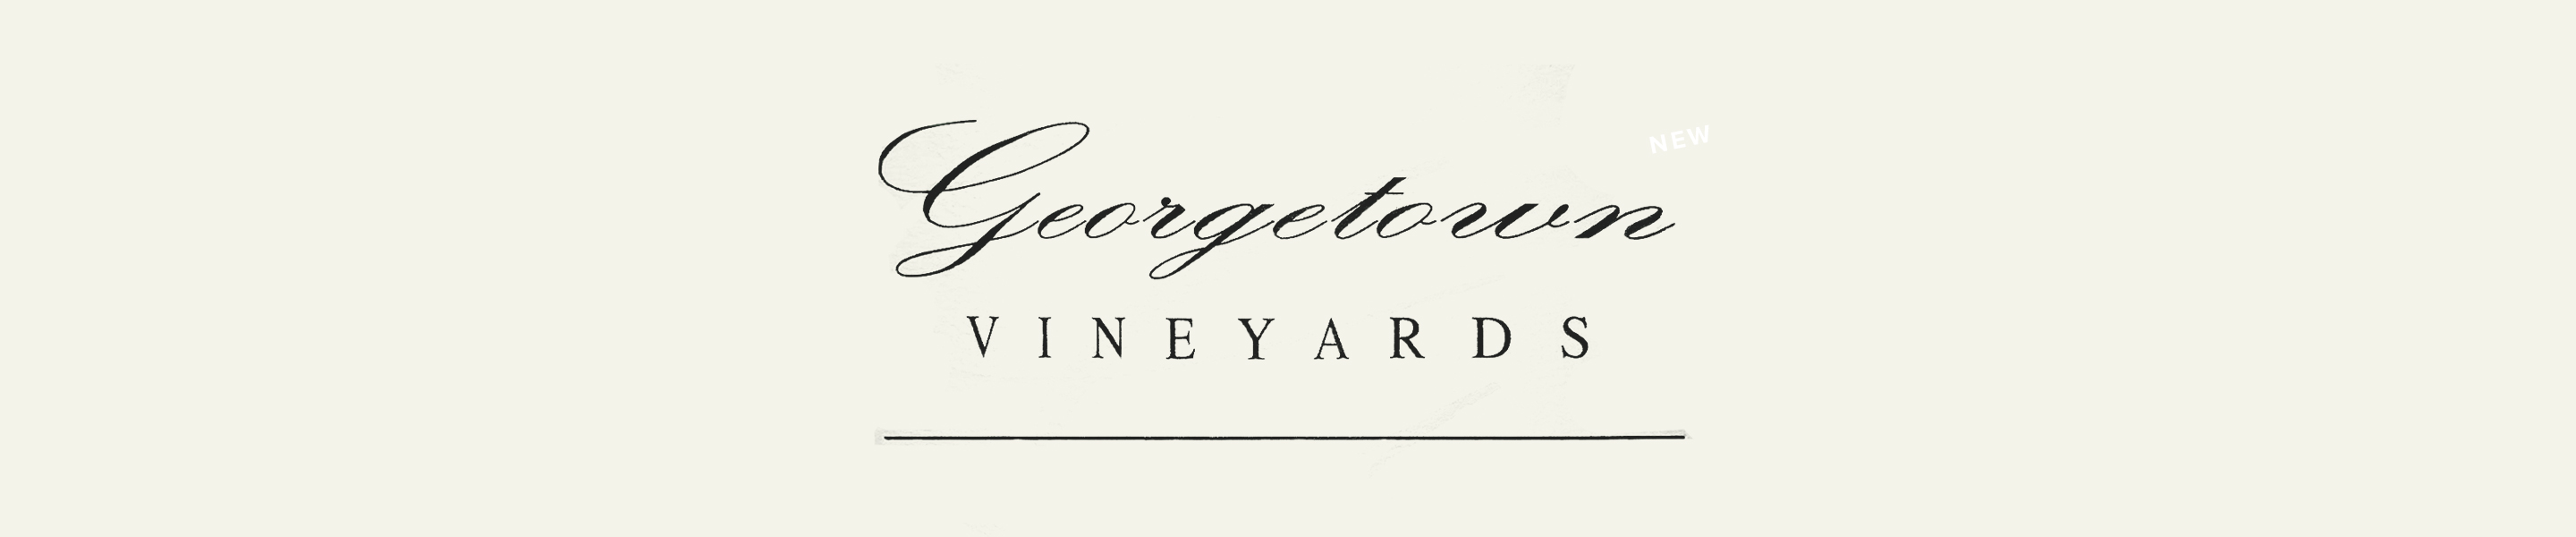 Founded in 1999, Georgetown Vineyards is a family-owned and operated winery located in Cambridge, Ohio. We produce a wide selection of sweet, semi-sweet and dry wines here at our vineyards, including many Ohio varietals.